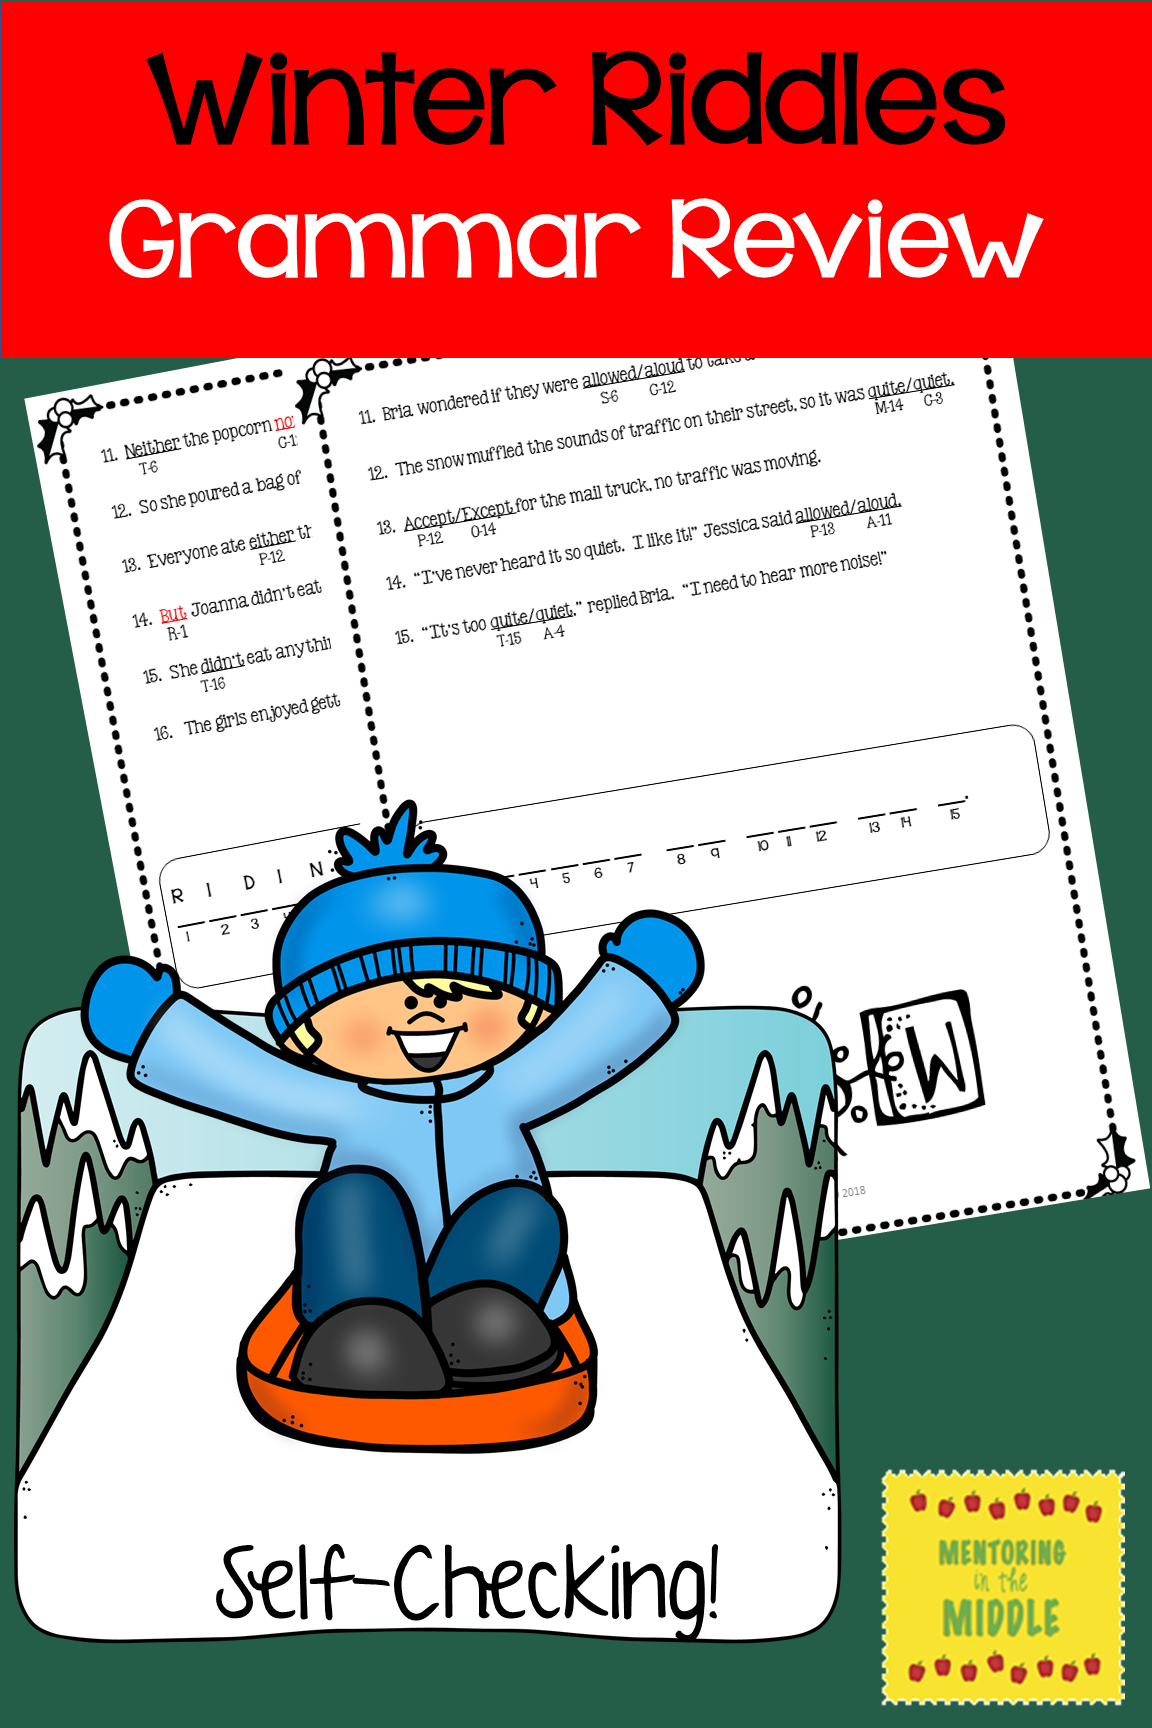 Five engaging, selfassessing grammar skills riddles and